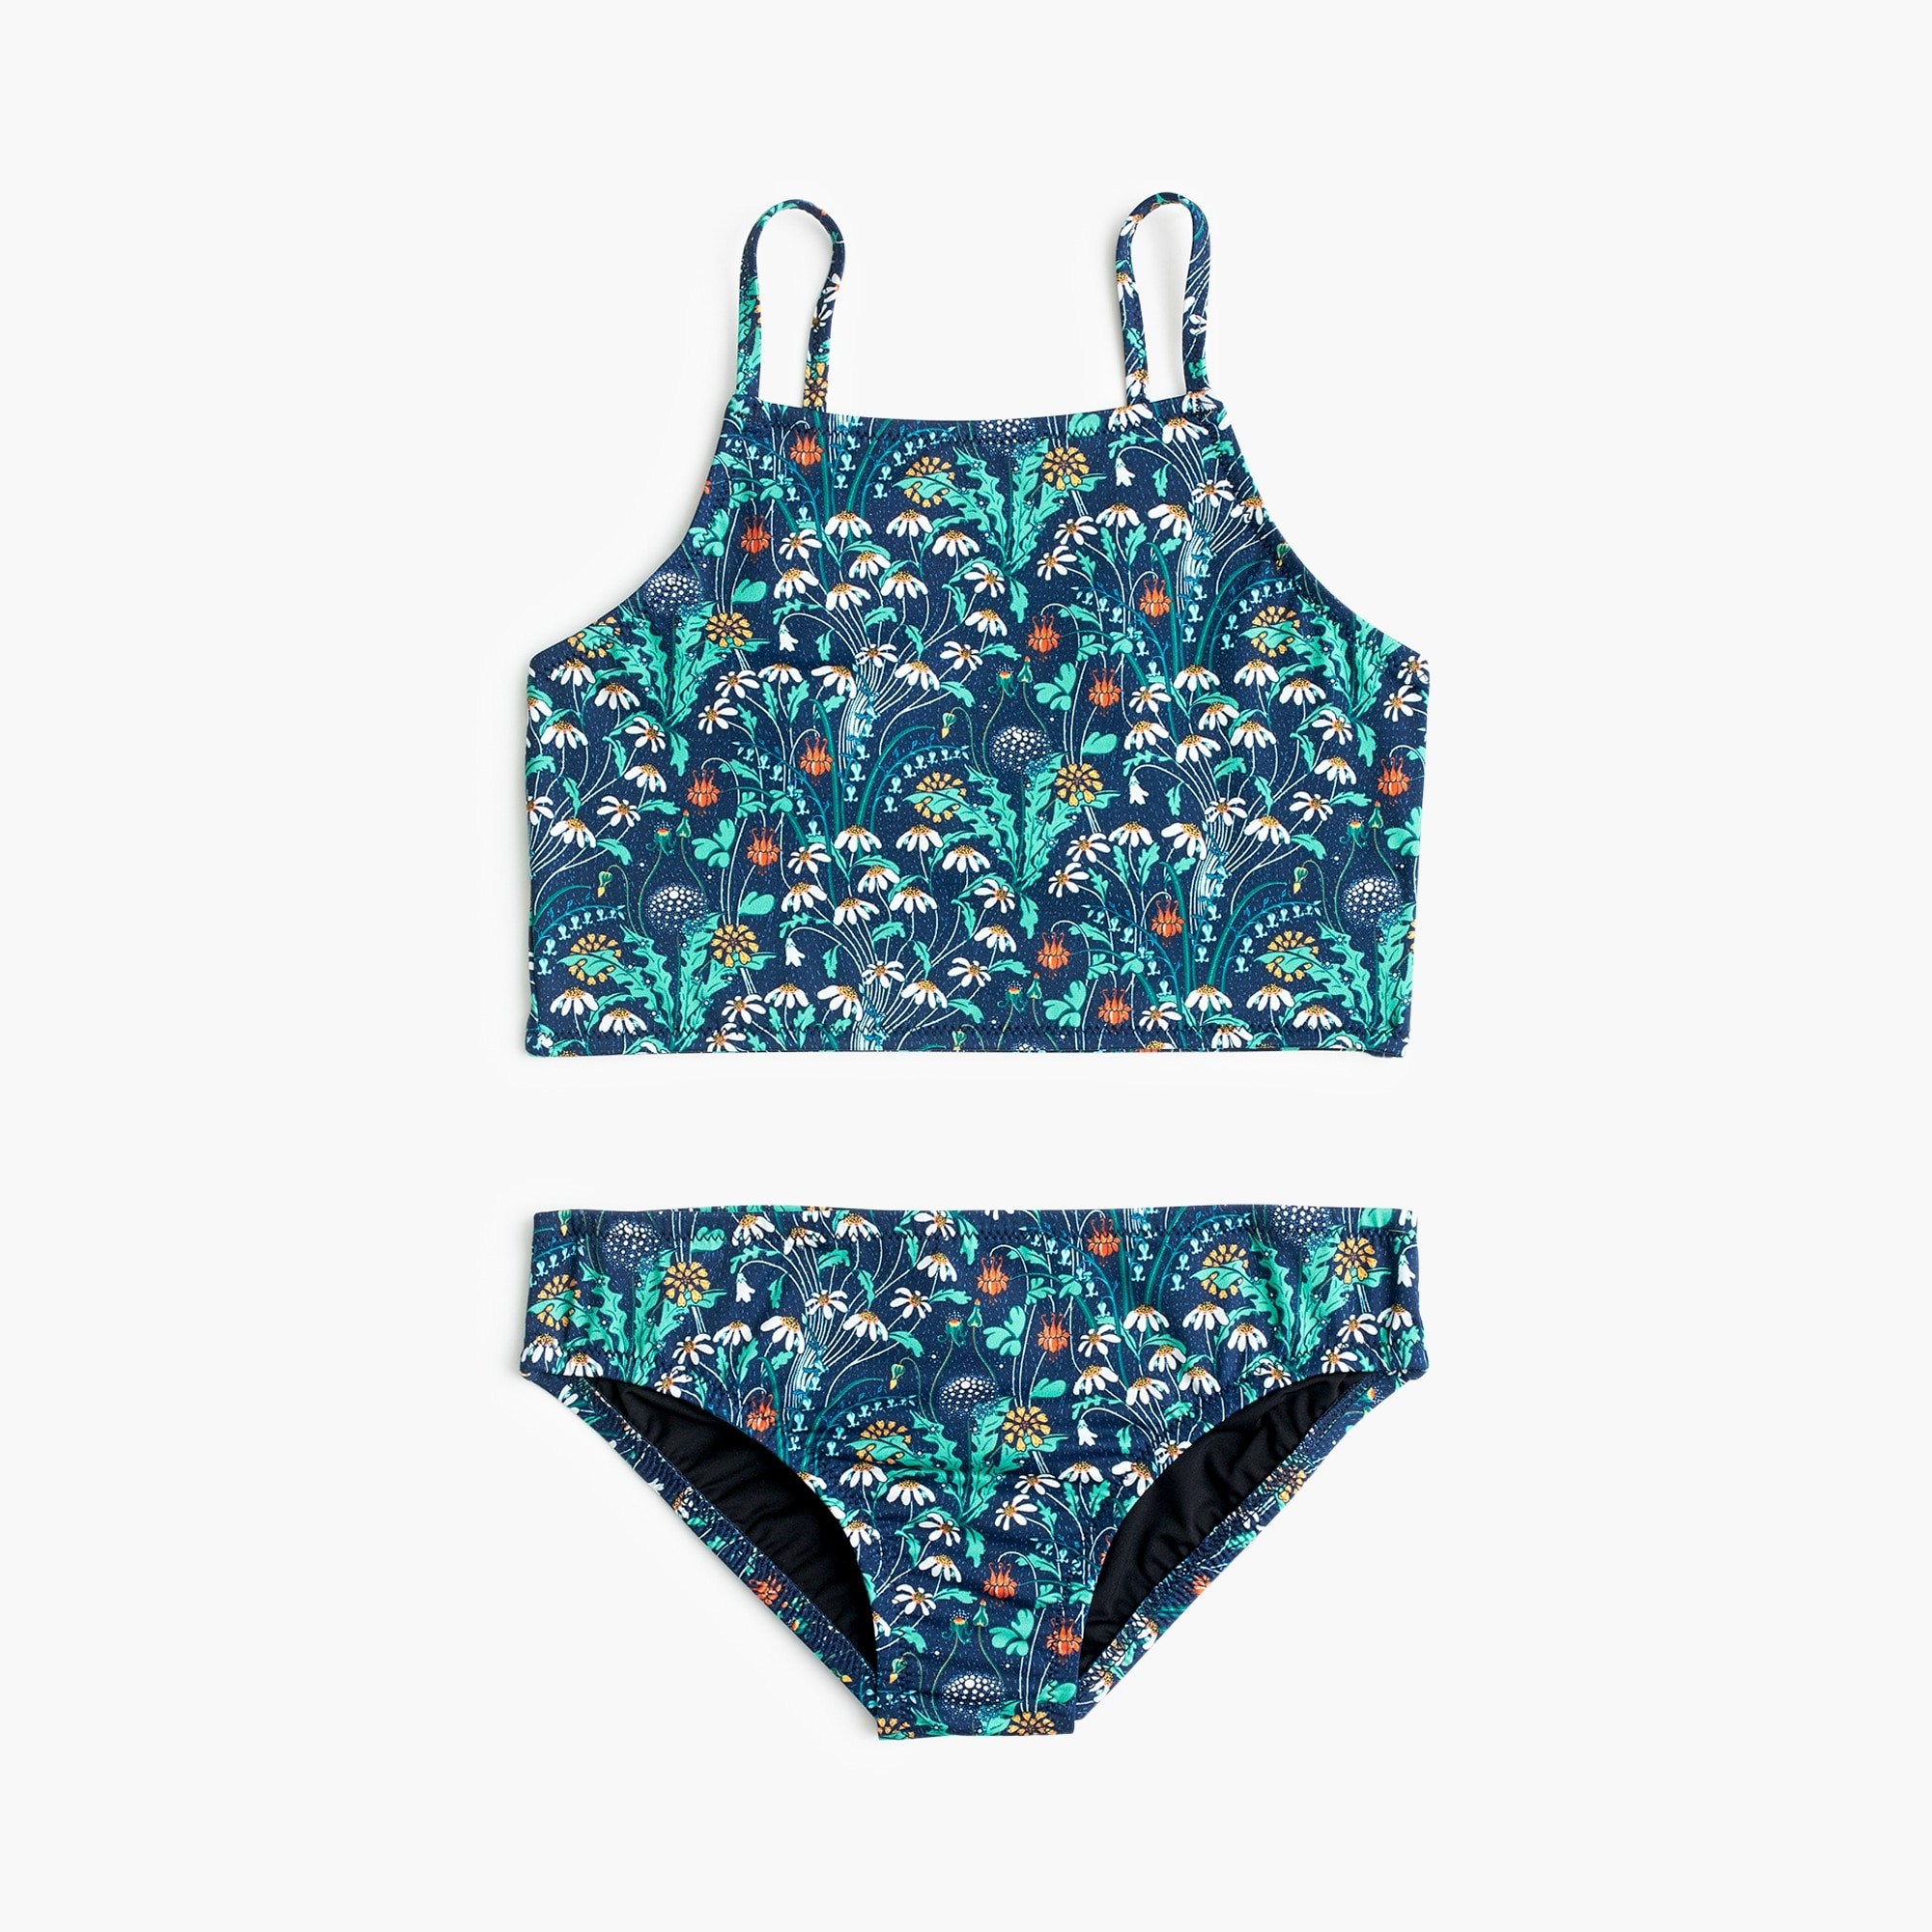 Girls' cropped tankini set in Liberty® floral